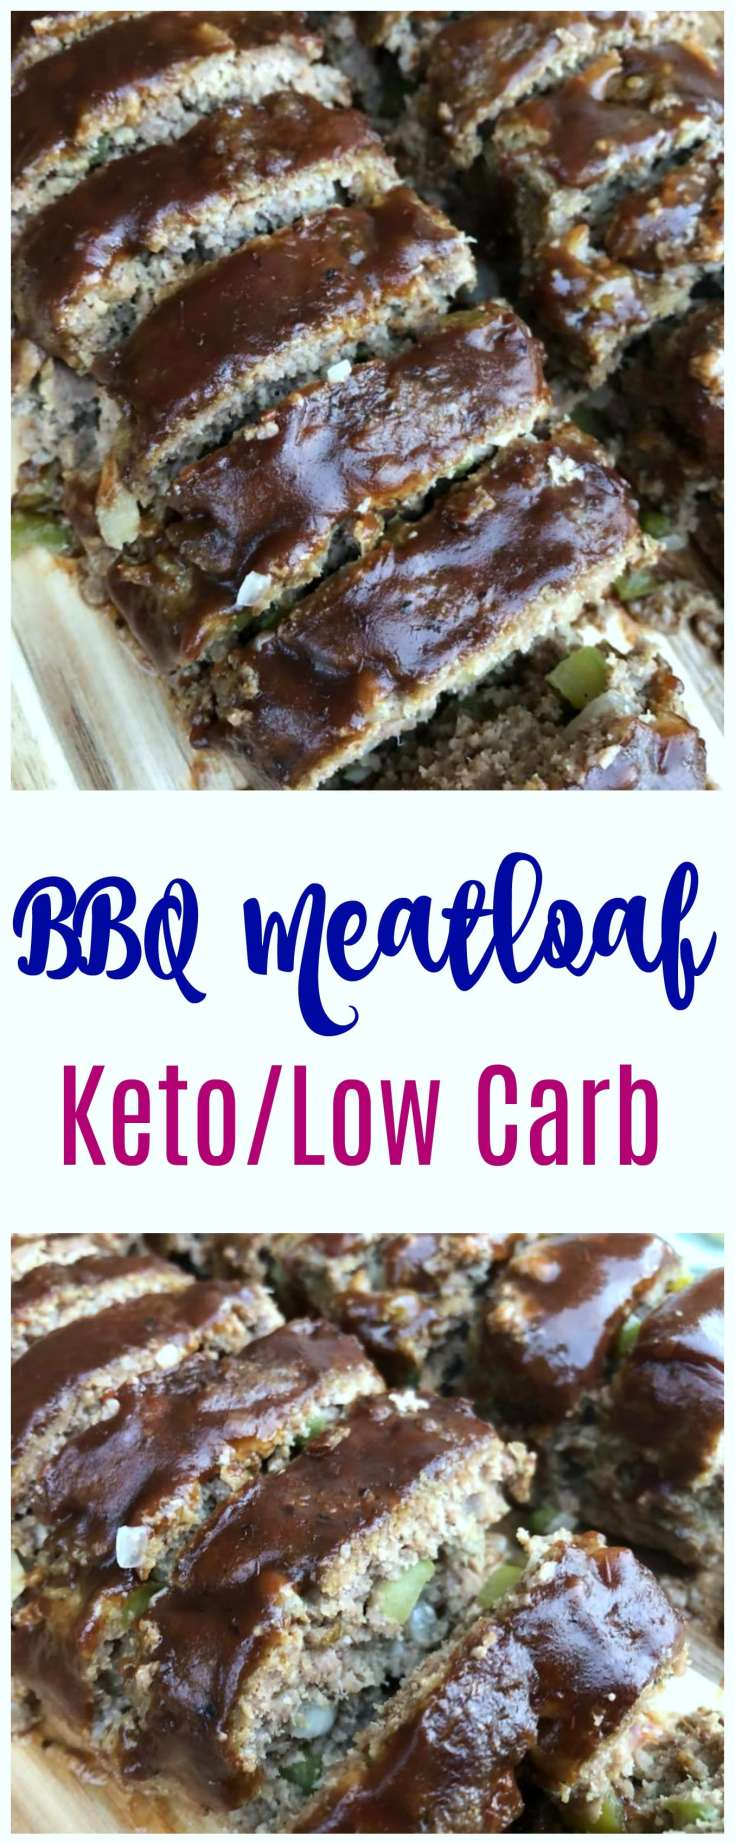 This BBQ Keto Meatloaf Recipe is a low carb dream! So easy to whip up and full of the flavor you want and expect in the perfect comfort food recipe! Add this low carb meatloaf to your keto meal plan this week as a real crowd pleasing family recipe!